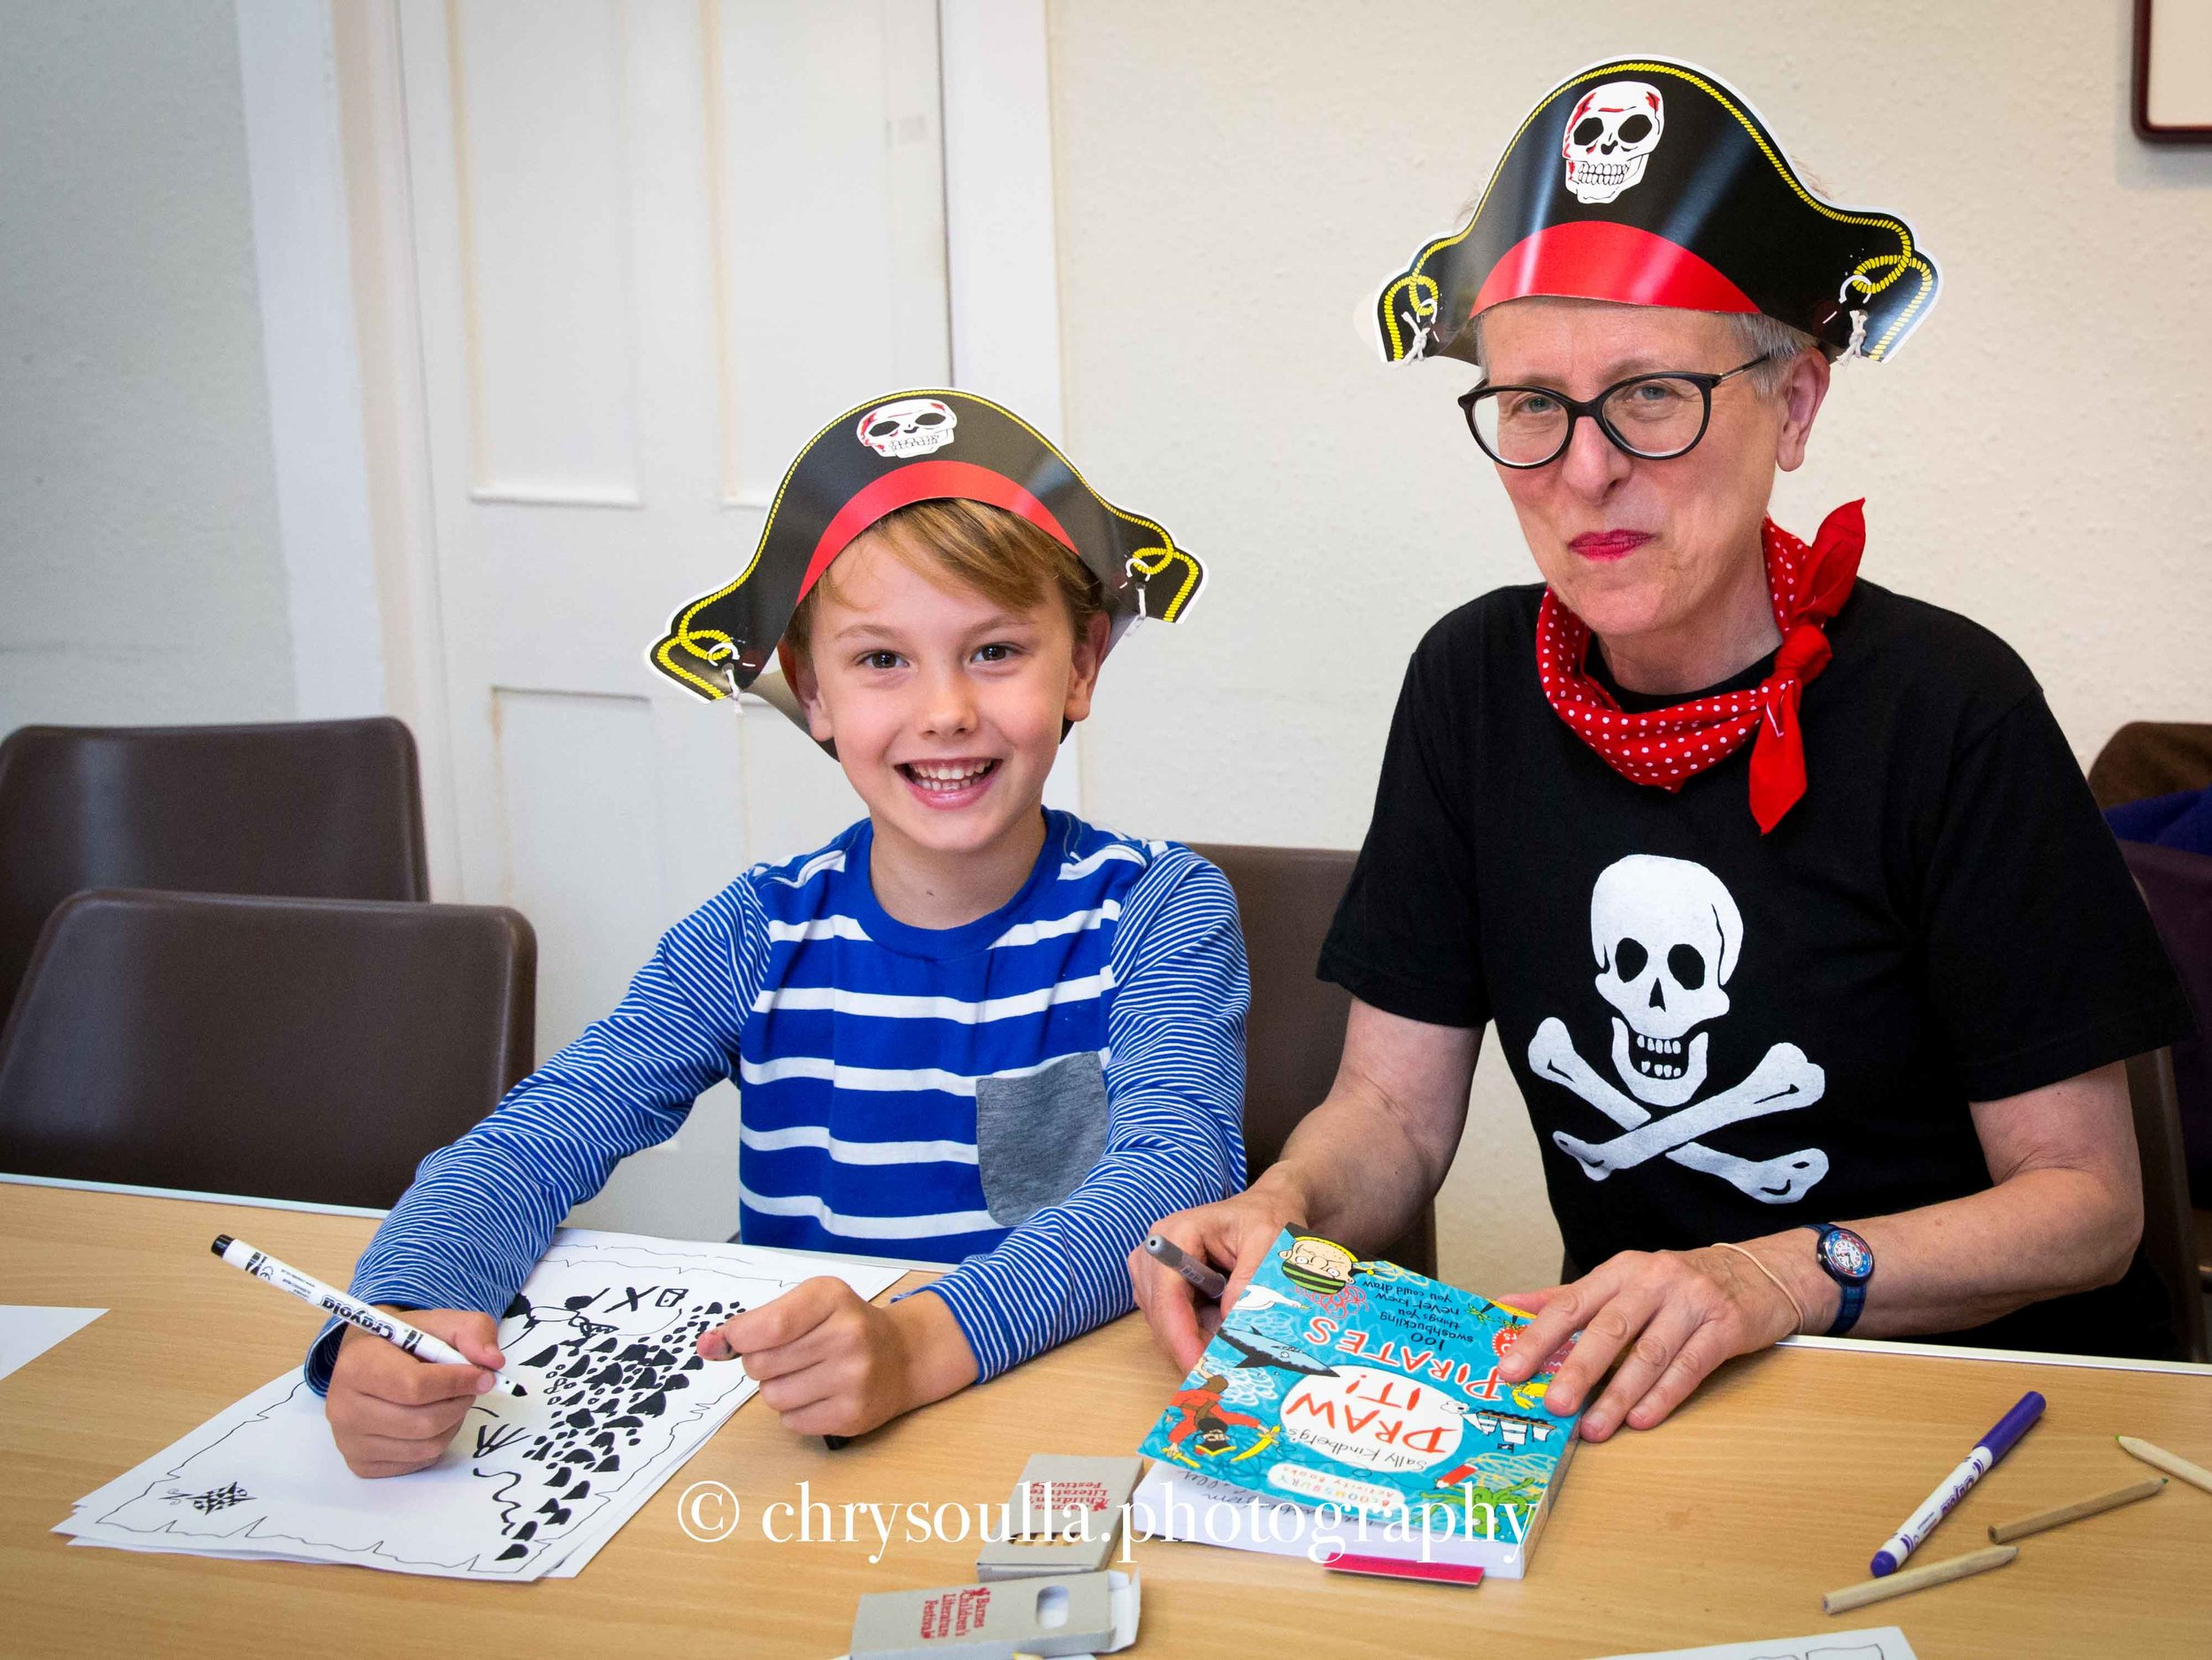 Pirates workshop at Barnes Children's Literature Festival with Sally Kindberg